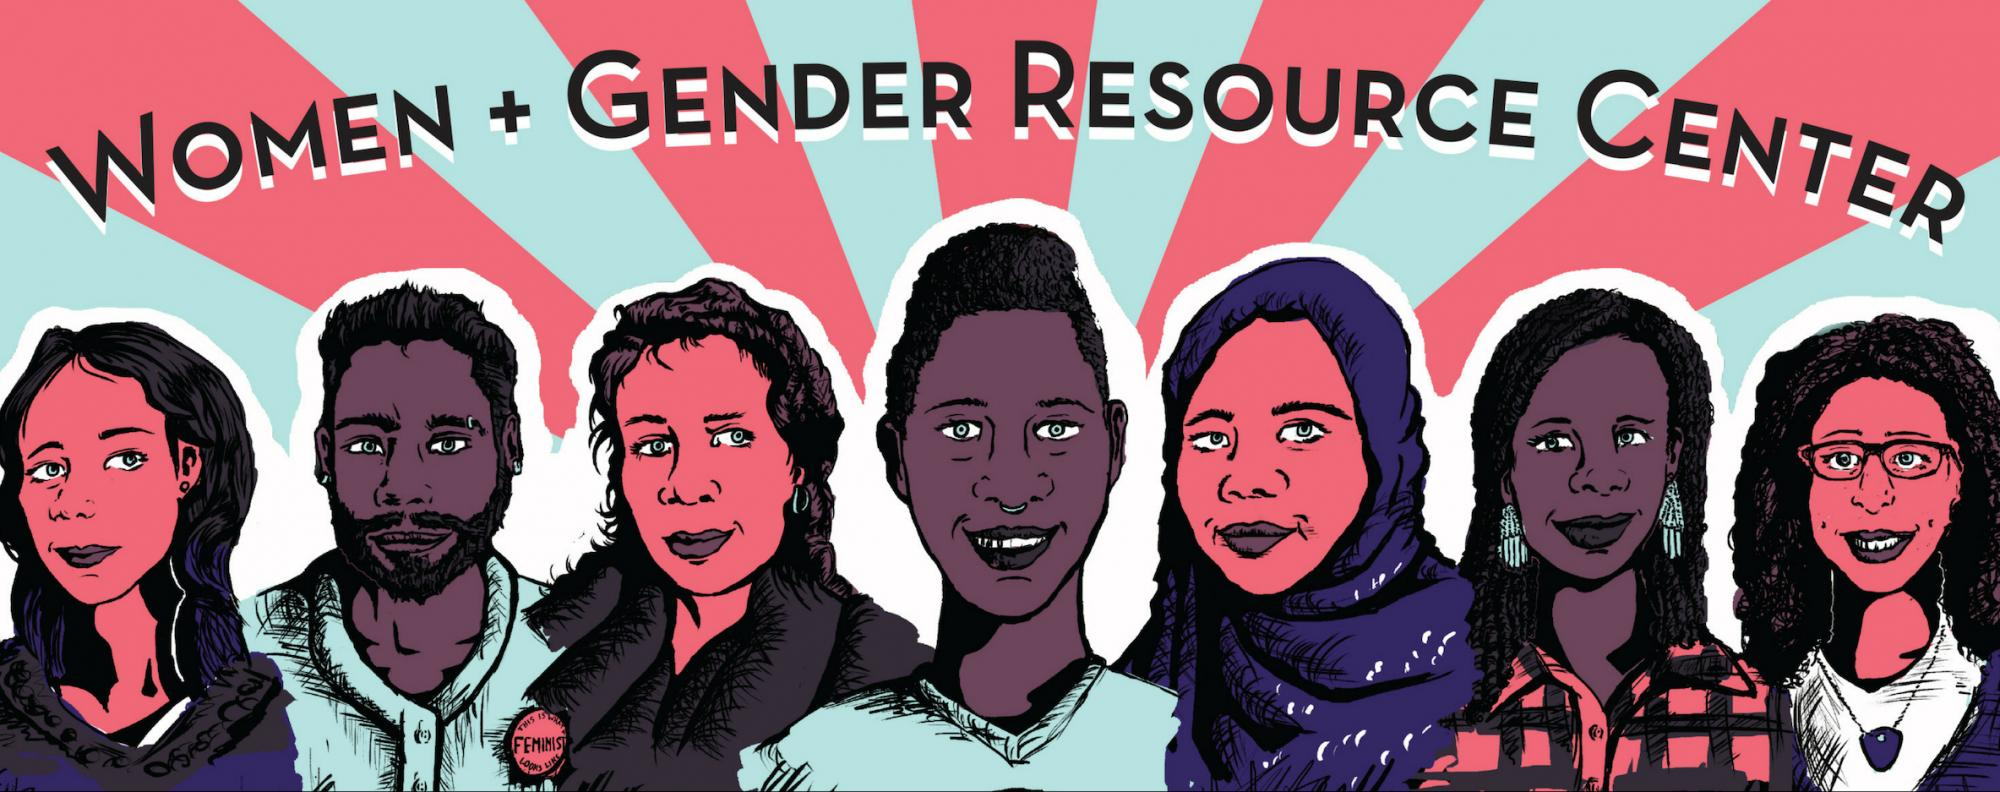 Women Gender Resource Center